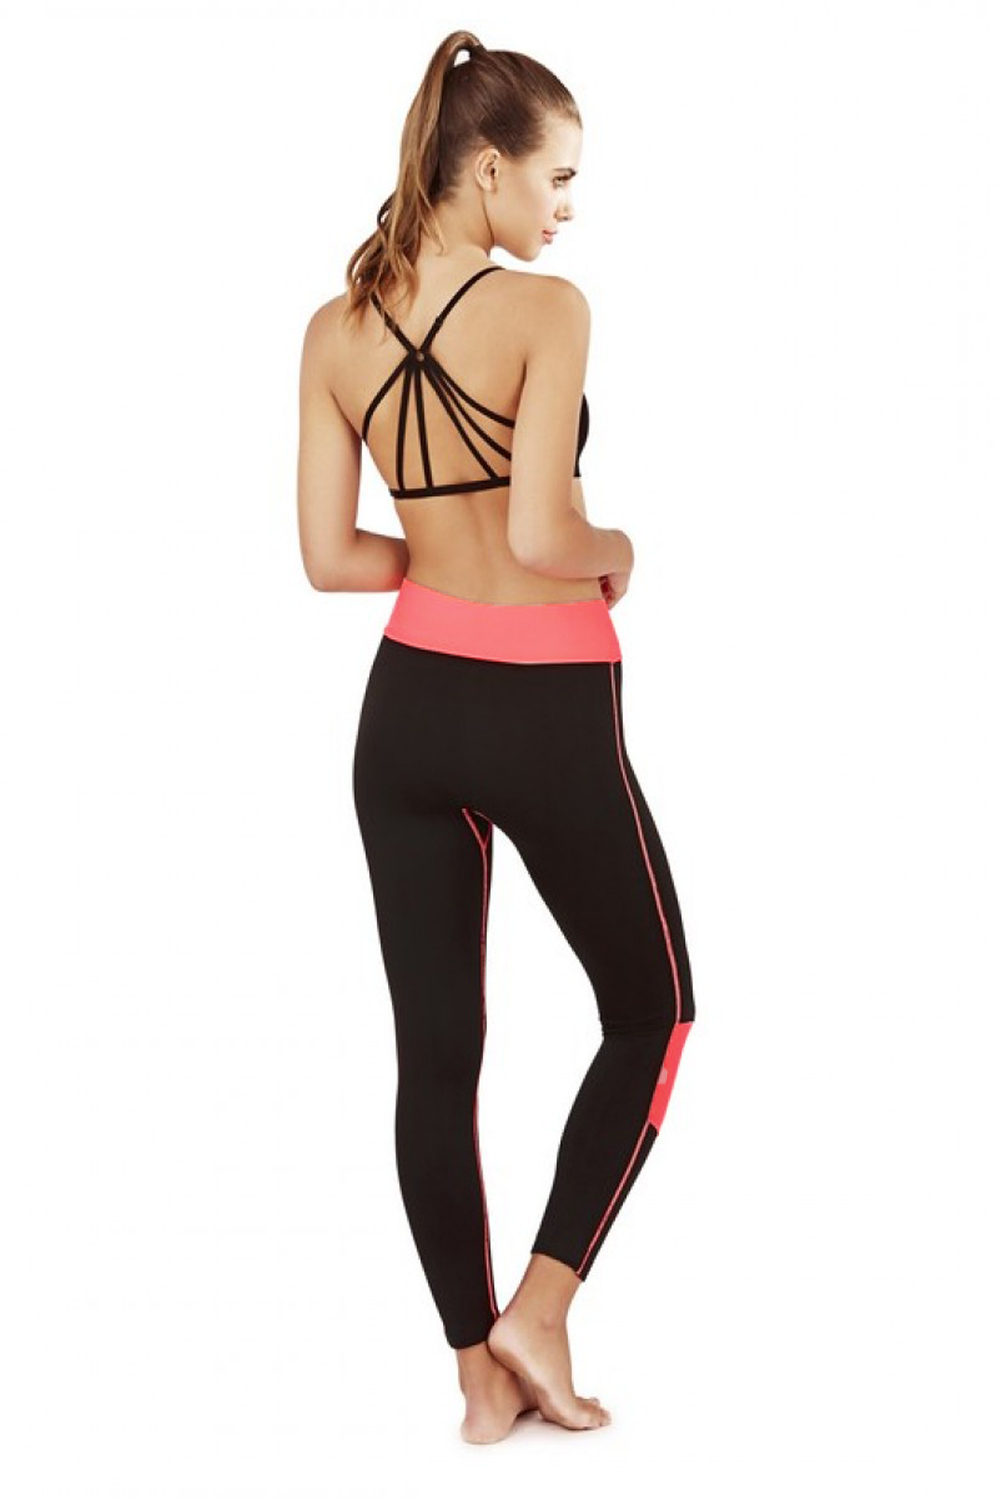 South Beach Womens Spirit Sports Bra Crop Top Ladies Zen Gym Leggings Activewear